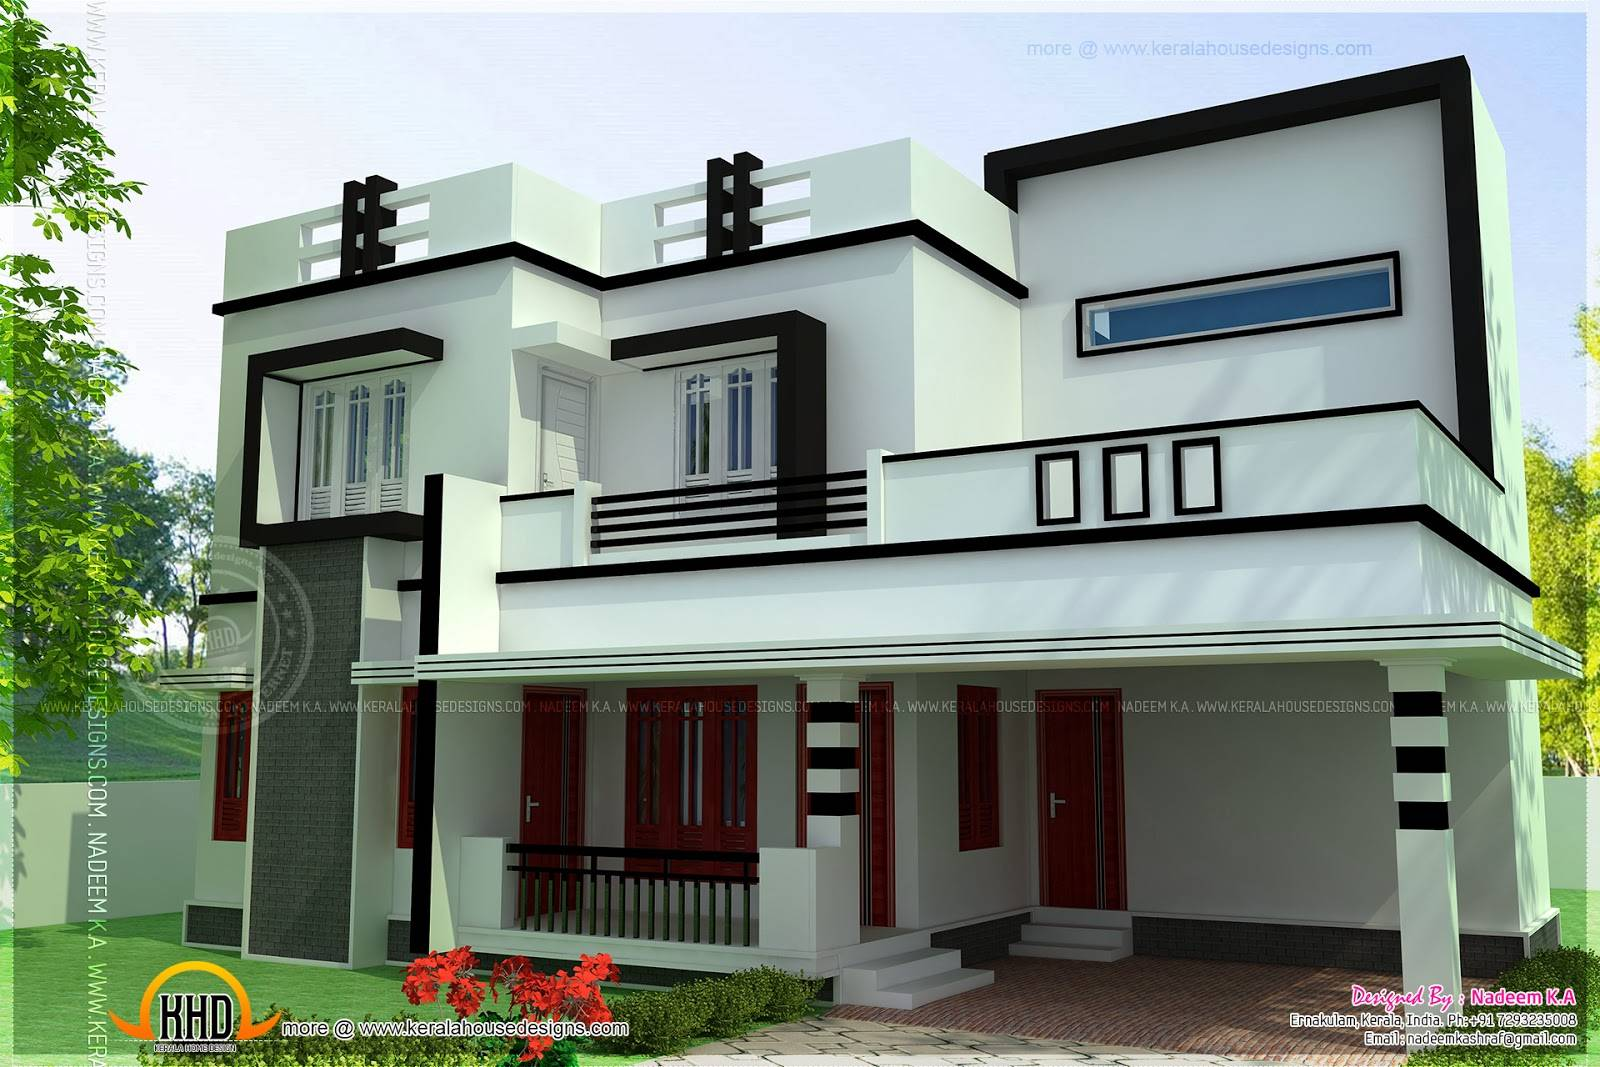 North Facing House Plan 3 furthermore Apartment Interior 70 also 2 Story Country Homes likewise Layout as well Minimalist House Interior Design With Outdoor Green Area In Denve Front View. on small two bedroom house plans